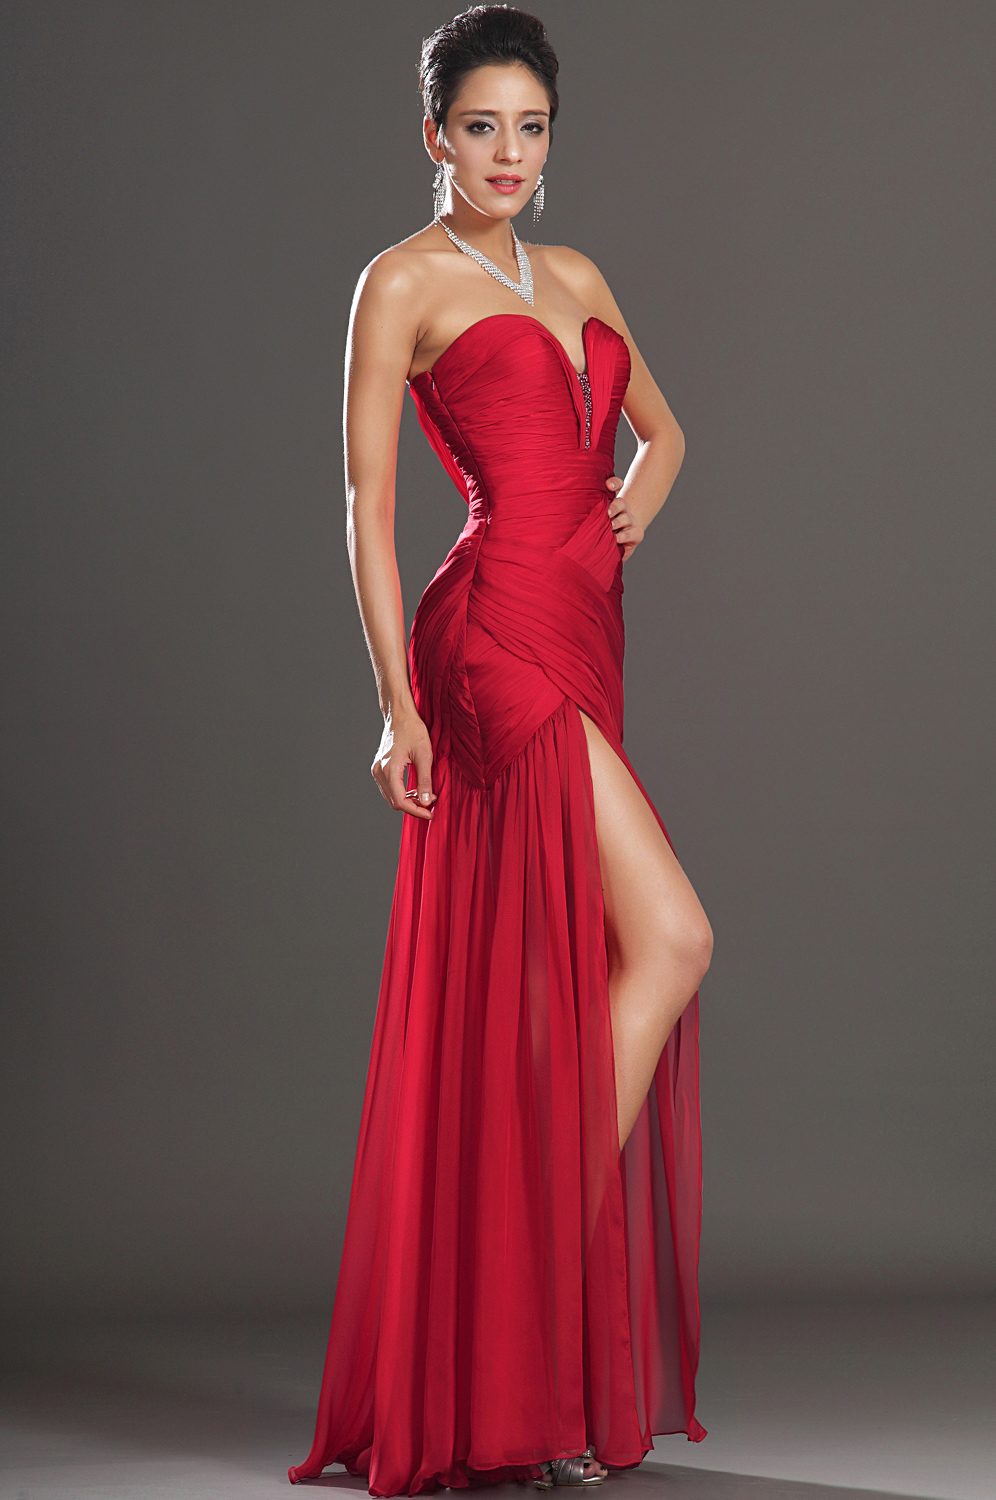 00120502a-robe-de-soiree-cocktail-Glamedressit